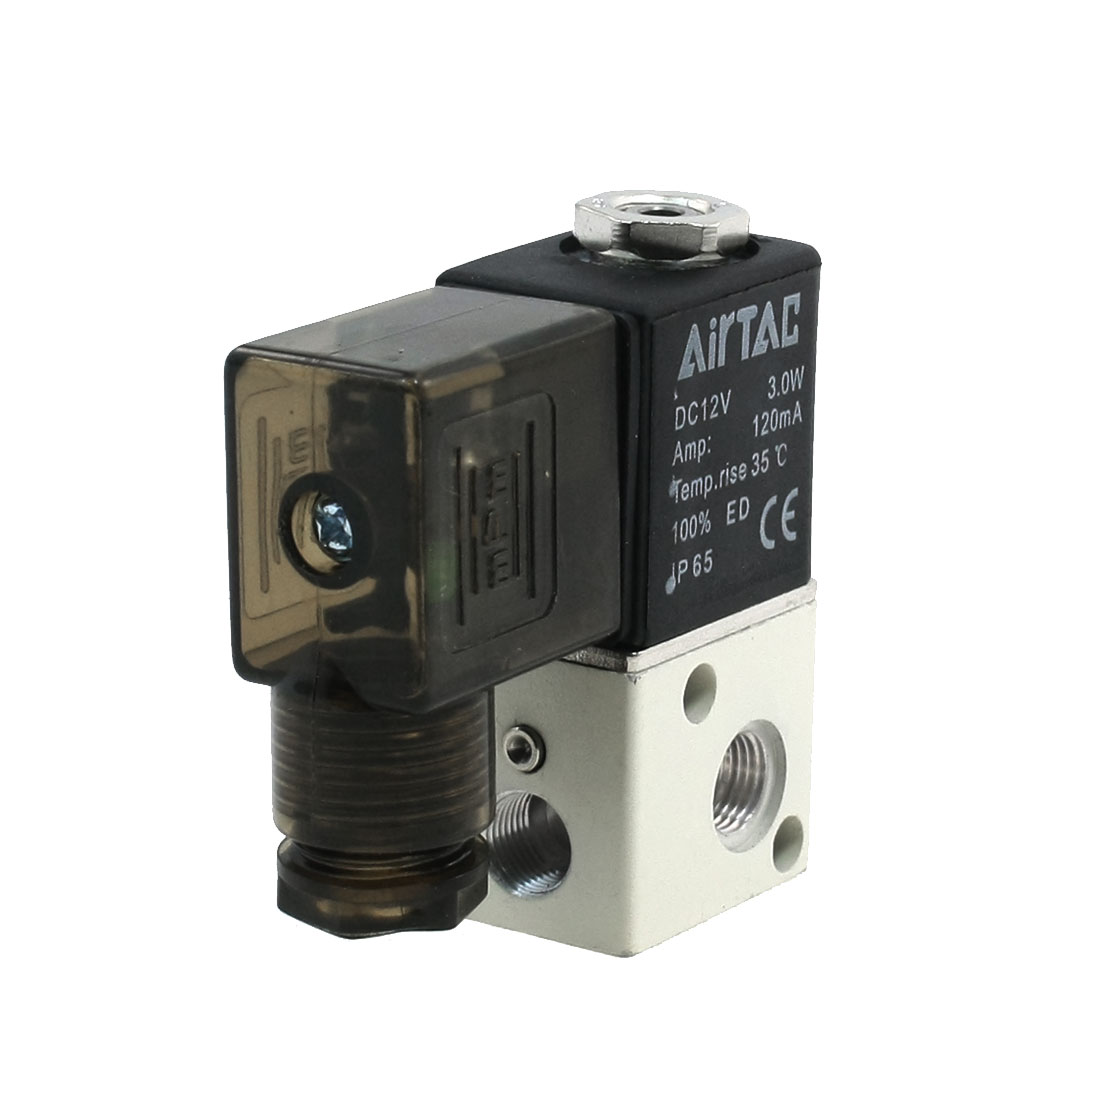 DC 12V 120mA 3W Pneumatic Components Air Solenoid Valve Coil Black